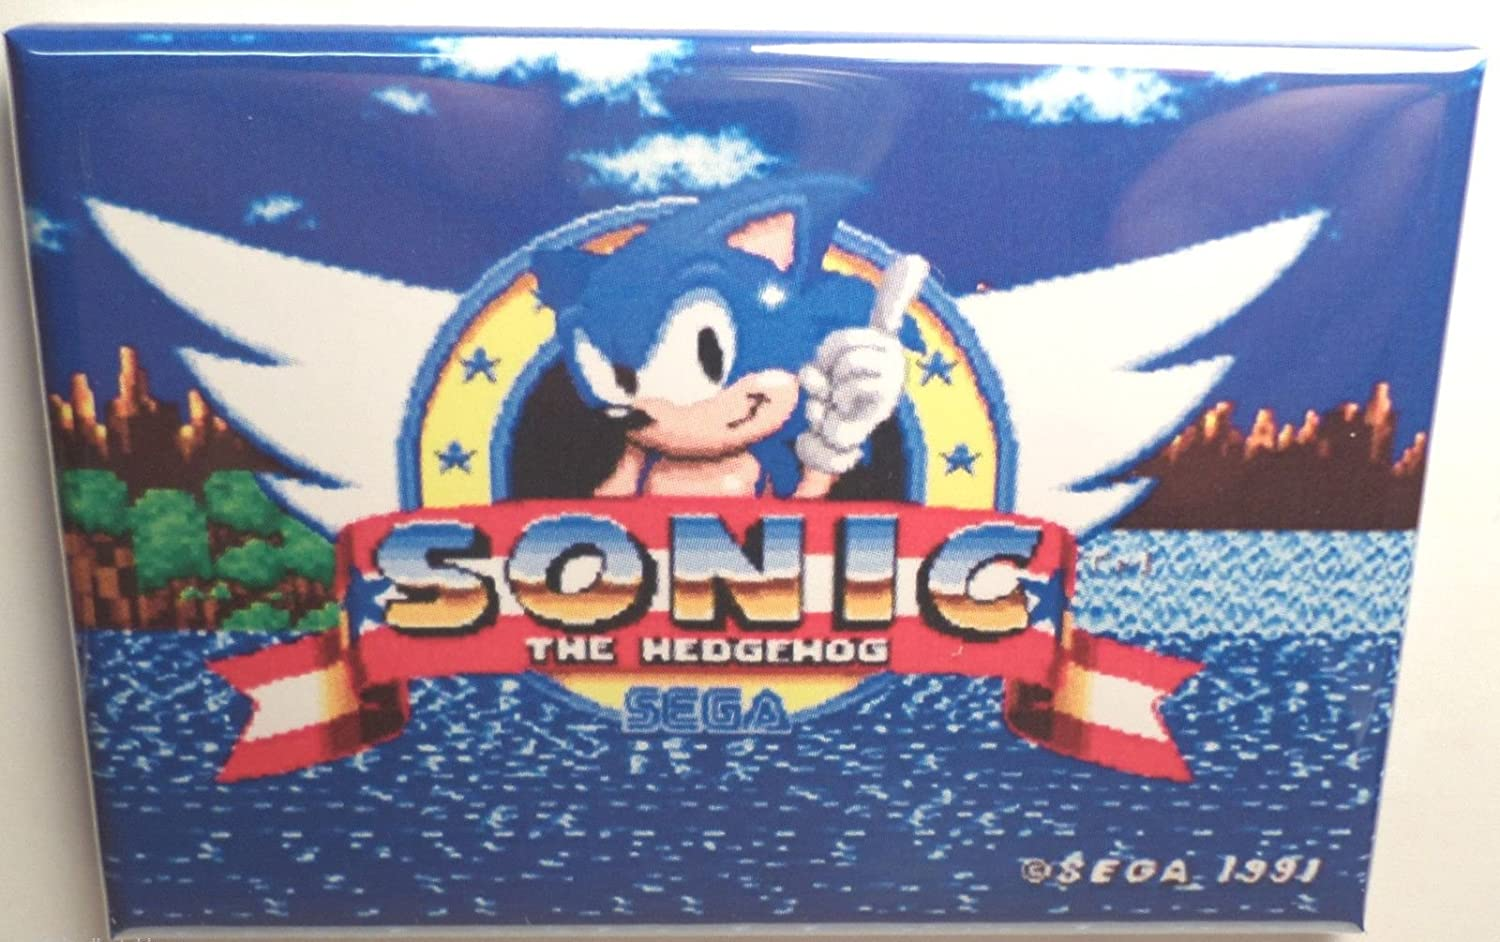 Amazon Com Sonic The Hedgehog Sega Title Screen 2 X 3 Refrigerator Magnet Home Kitchen